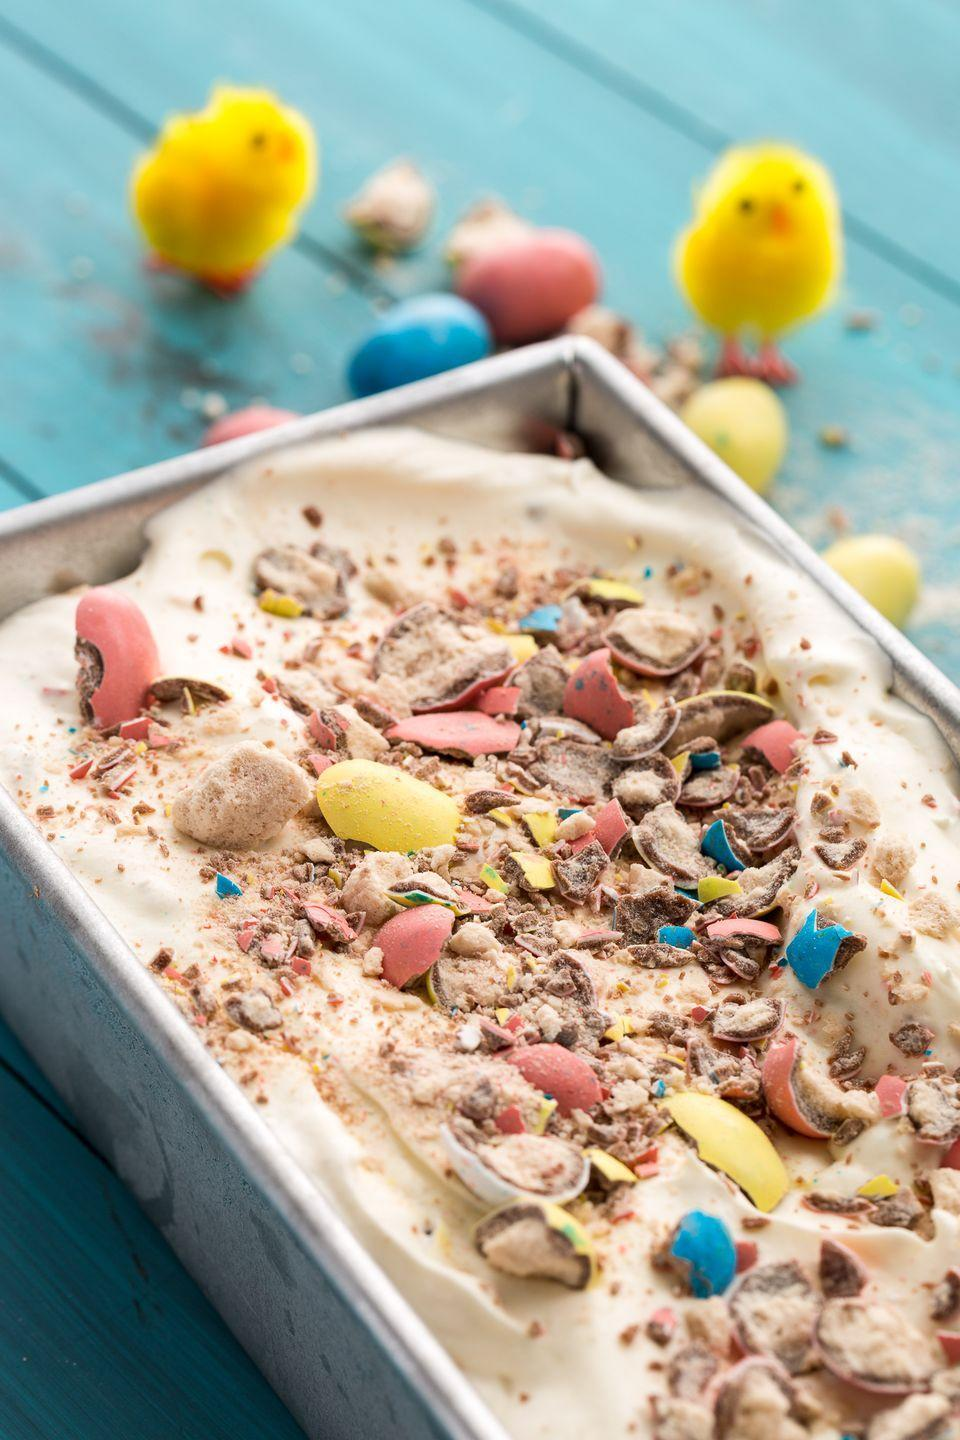 """<p>Look at all the pretty colors 😍.</p><p>Get the recipe from <a href=""""/cooking/a46299/robins-egg-no-churn-ice-cream-is-easter-joy-in-a-cup/"""" data-ylk=""""slk:Delish"""" class=""""link rapid-noclick-resp"""">Delish</a>.</p>"""